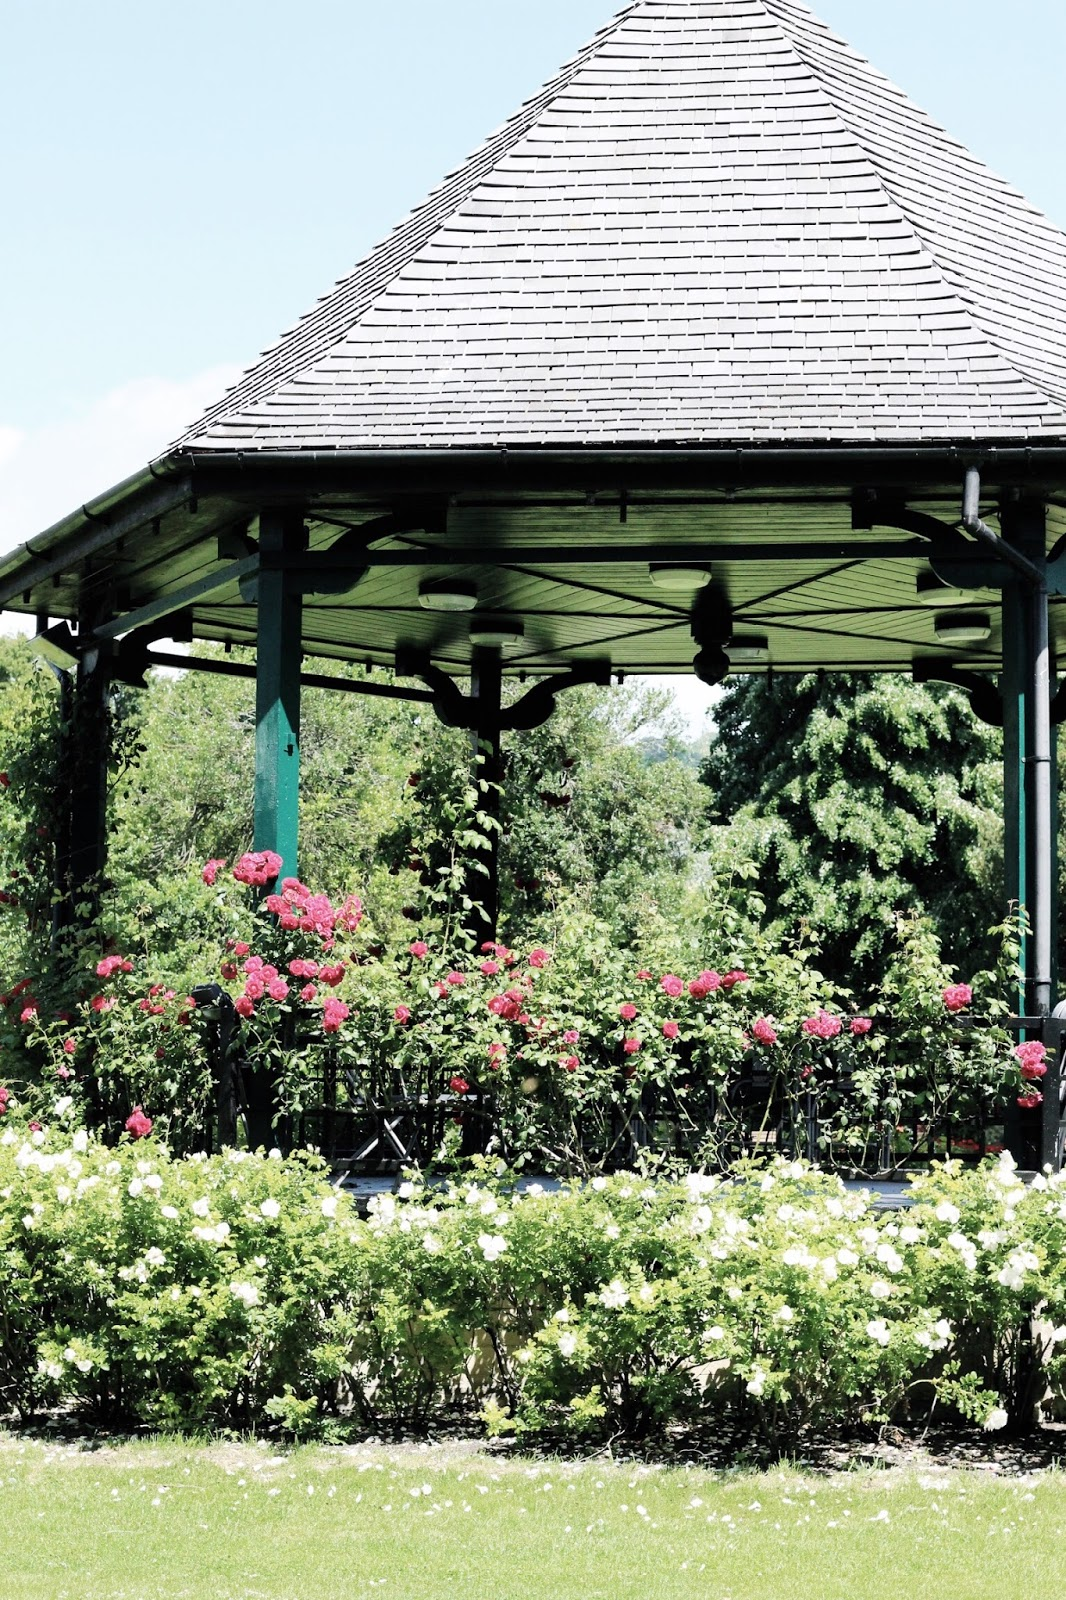 Floral Bandstand at the Parade Gardens